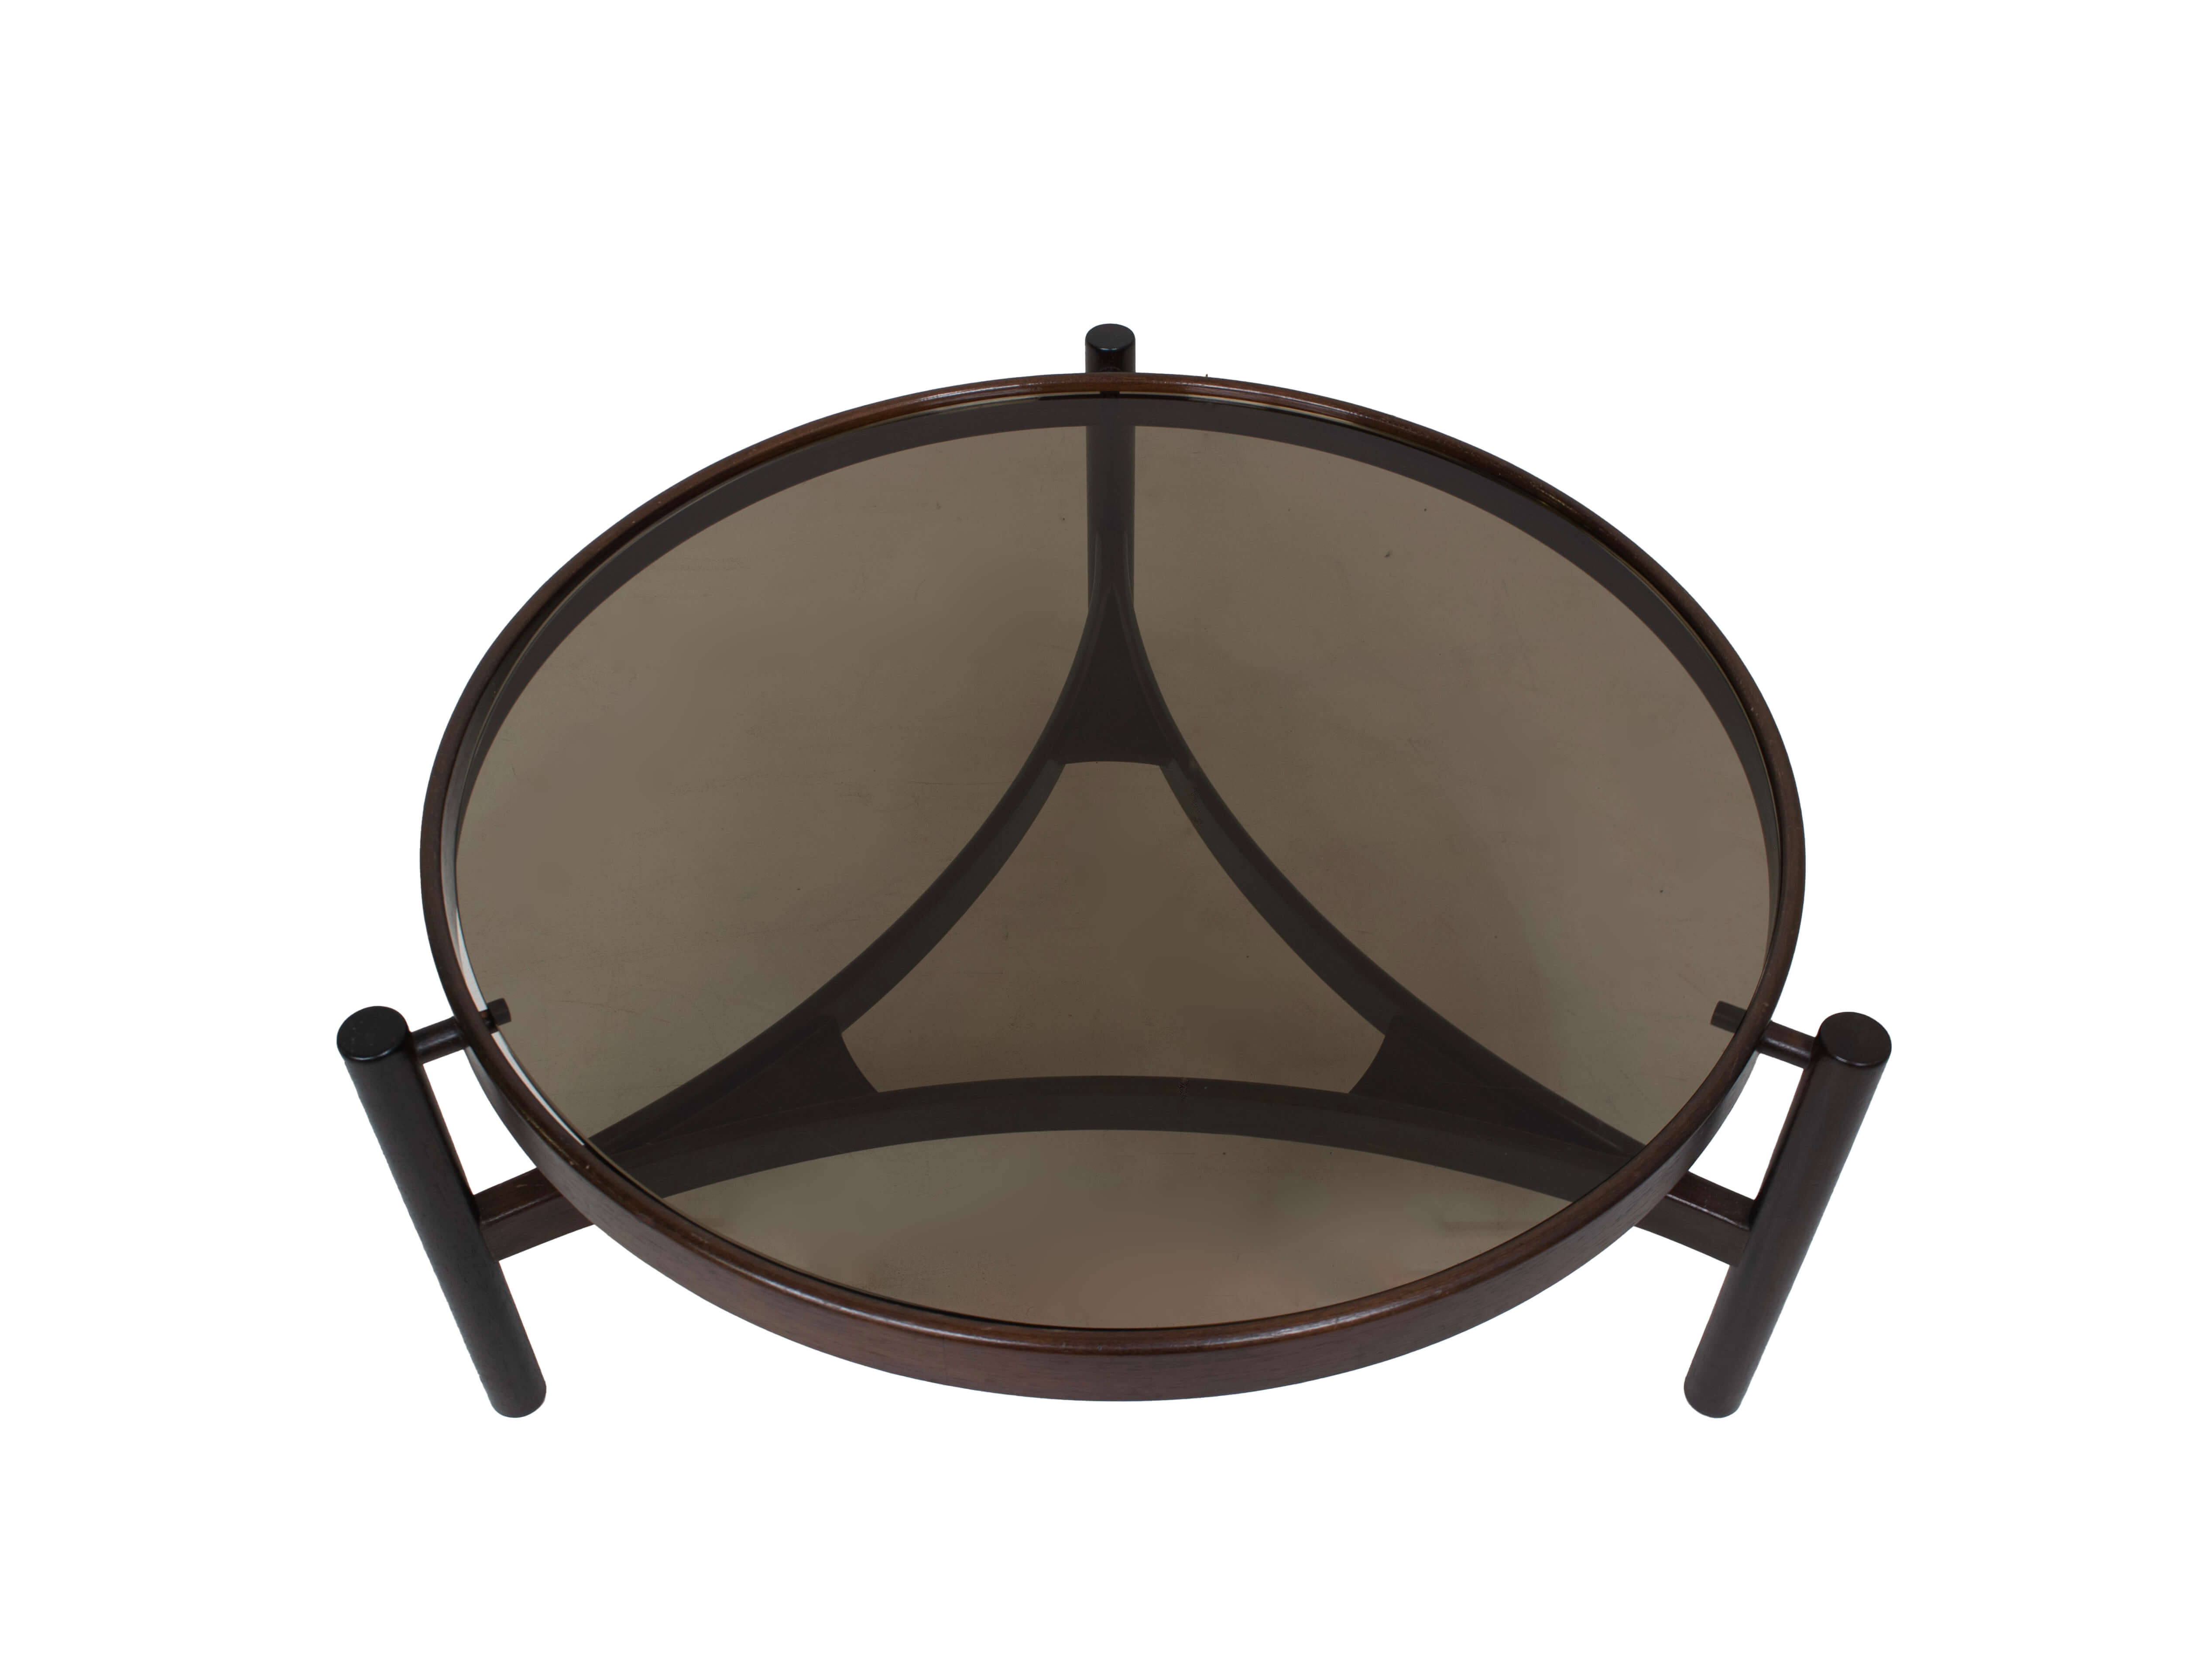 Top view Round Italian Modern Coffee Table Model 775 by Gianfranco Frattini for Cassina, 1960s